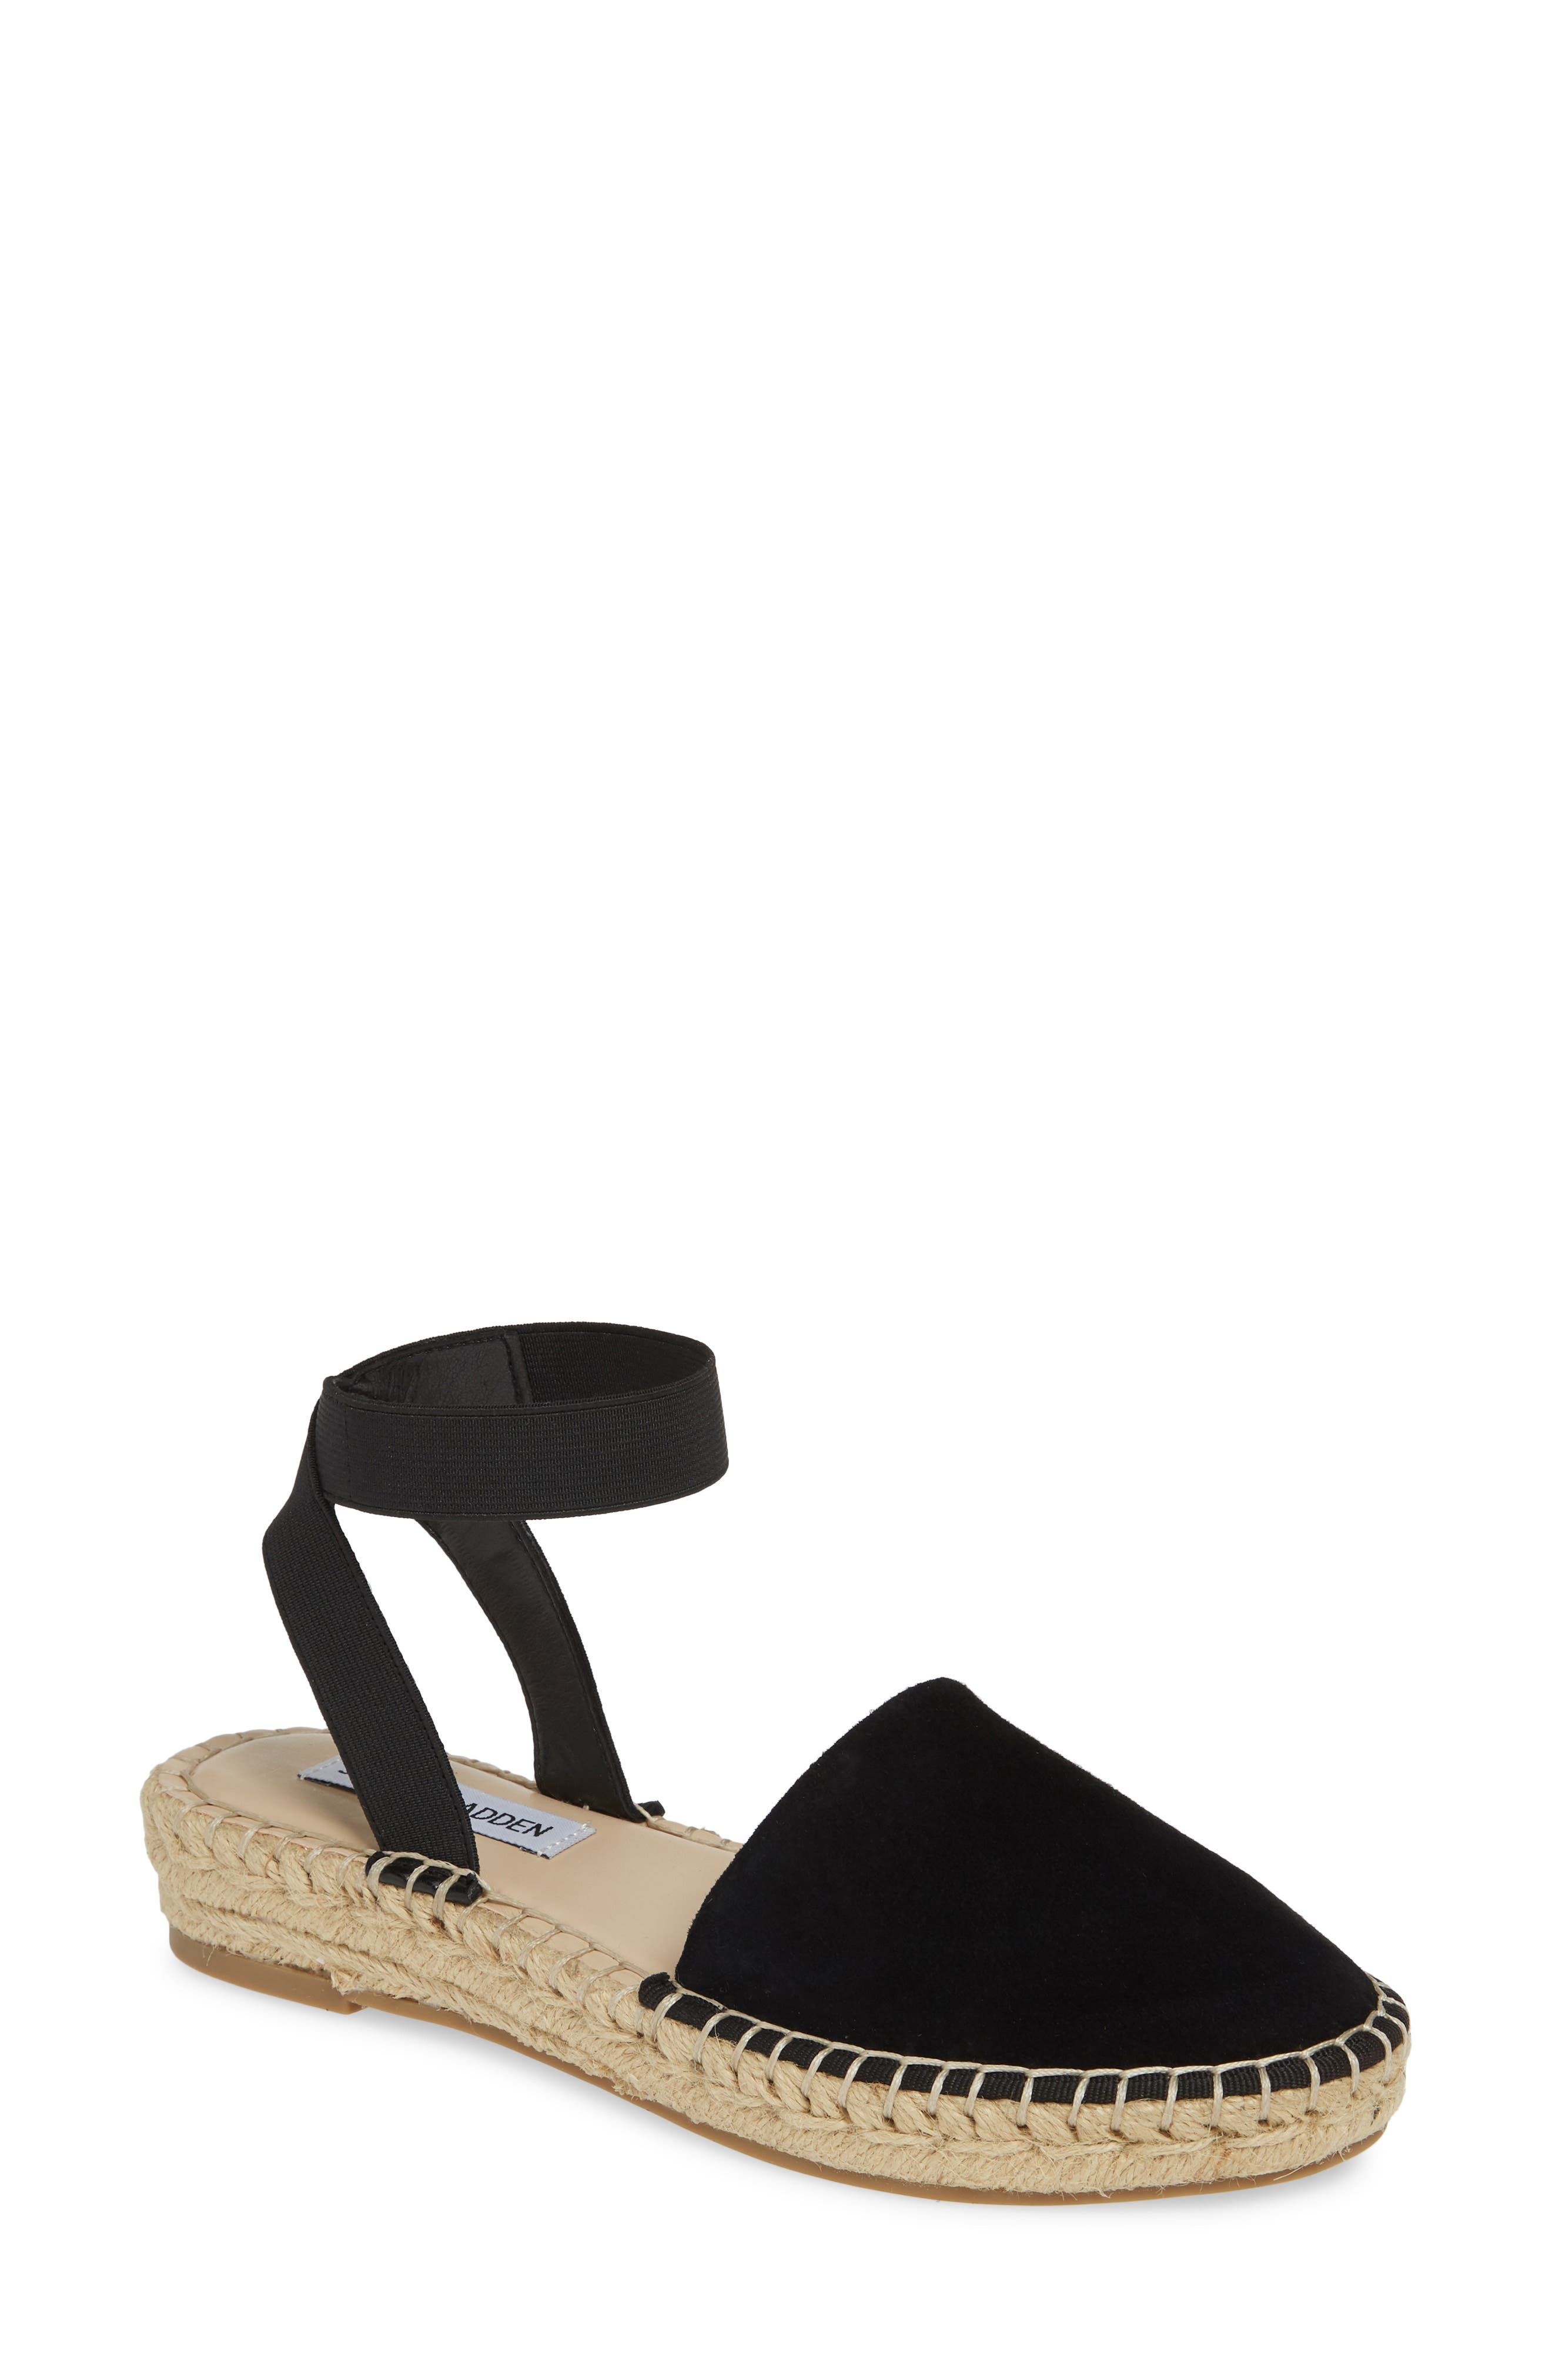 Moment Strappy Espadrille Sandal, Main, color, BLACK SUEDE